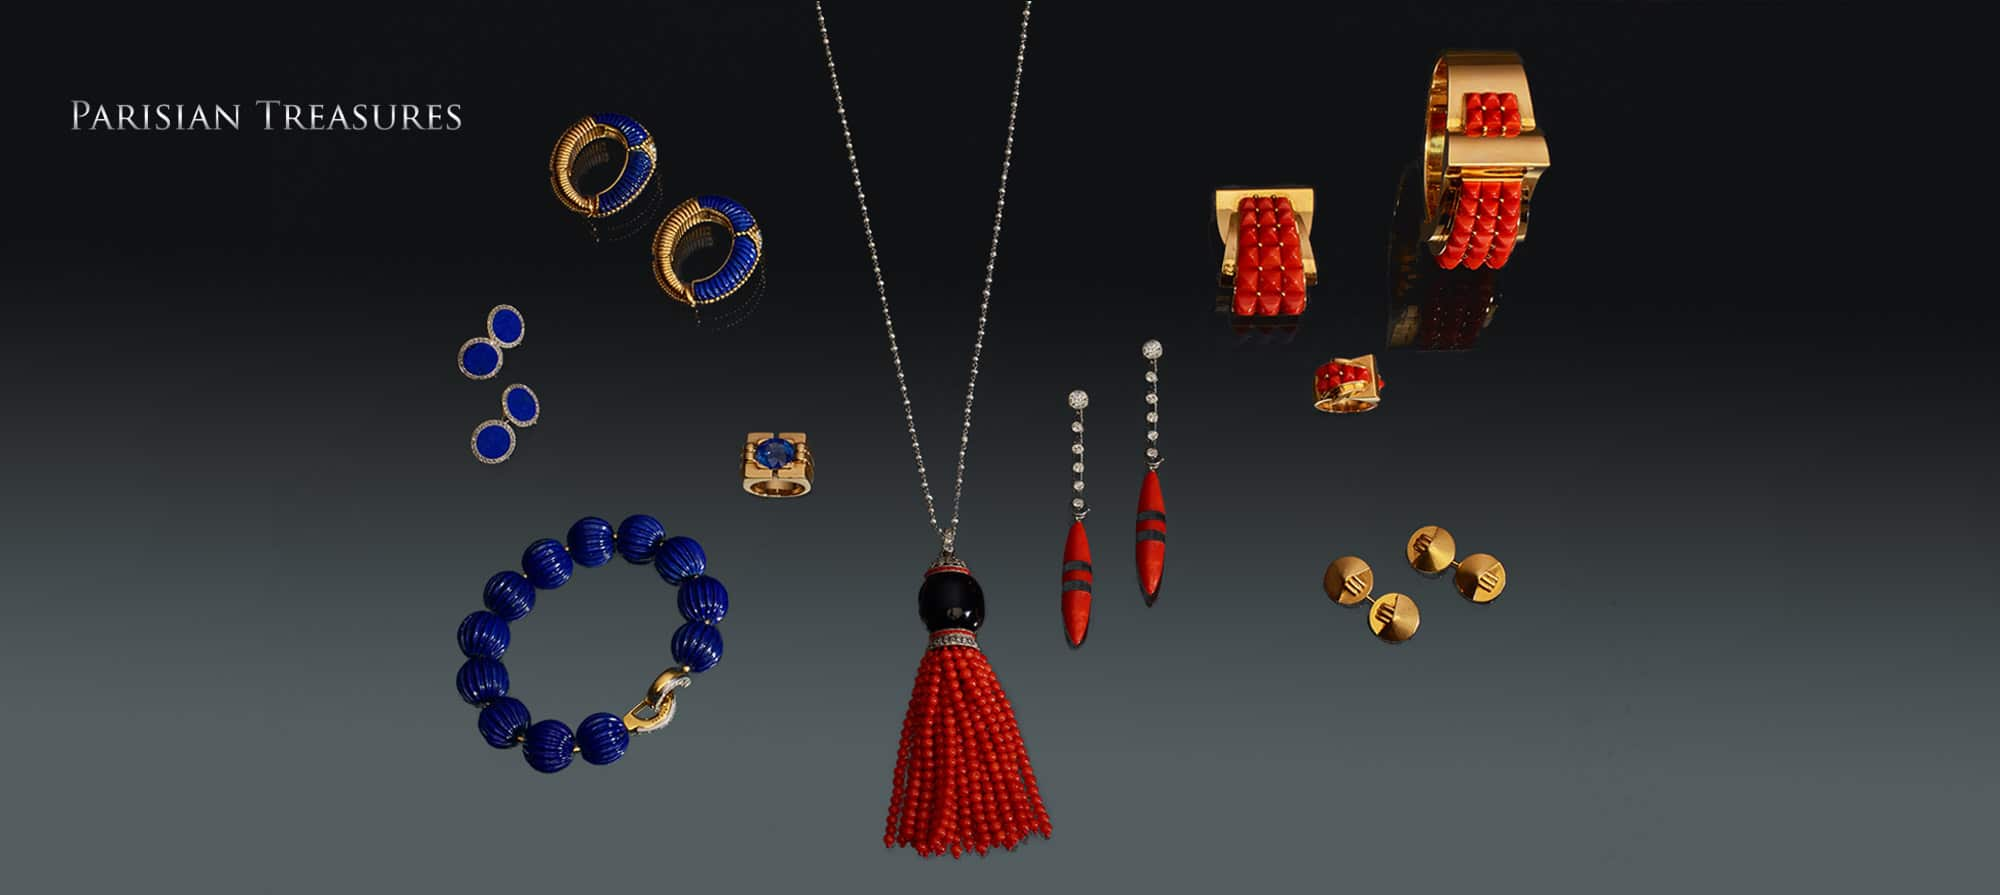 "Lapis & Diamond Bracelet by Cartier, Paris, French Lapis & Diamond Cufflinks, Lapis & Diamond Earrings in Gold by Van Cleef & Arpels, Sapphire Ring in Gold by Van Cleef & Arpels, Art Deco Coral, Natural Pearl, and Onyx Sautoir, Art Deco Diamond, Coral, and Onyx Earrings, Coral Brooch in Gold by Chaumet, Paris, Coral Bracelet in Gold by Chaumet, Paris, Coral Ring in Gold by Chaumet, Paris, ""Chapeau Chinois"" Cufflinks in Gold by Rene Boivin, Paris"